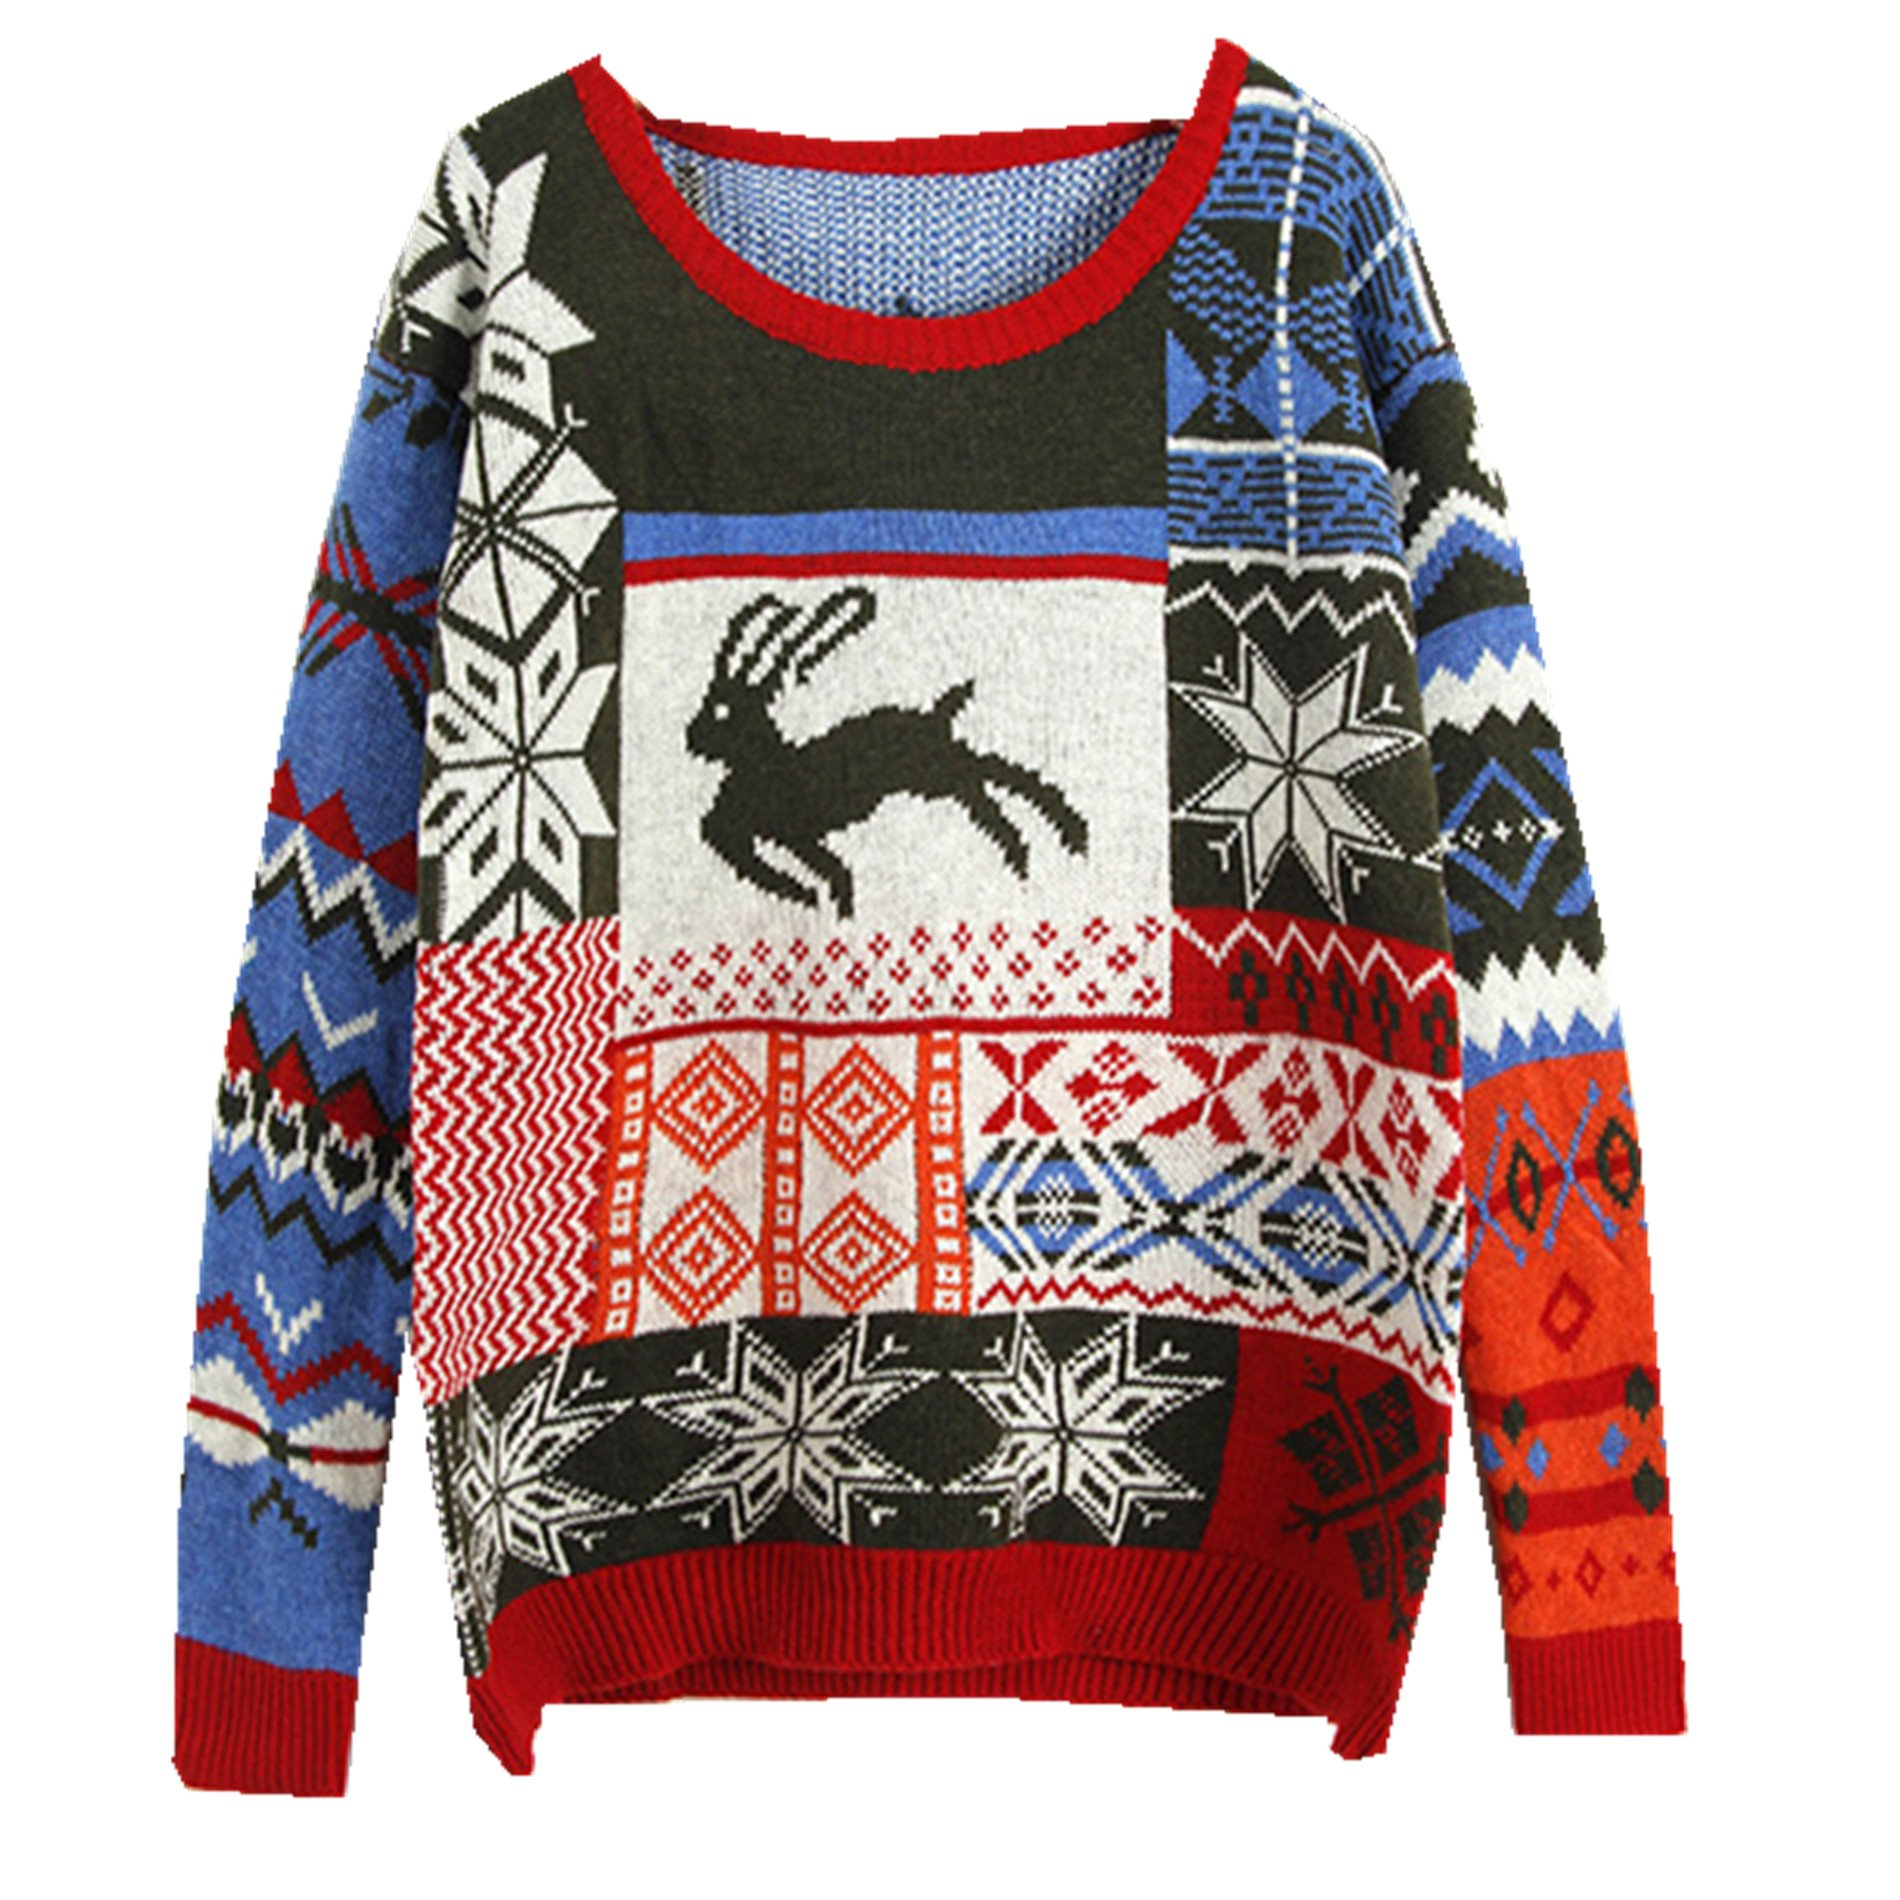 Taiduosheng Girls Ugly Christmas Sweater Print Reindee jumper Xmas Gift Pullover Knit sweater (Fit XS-L) red green